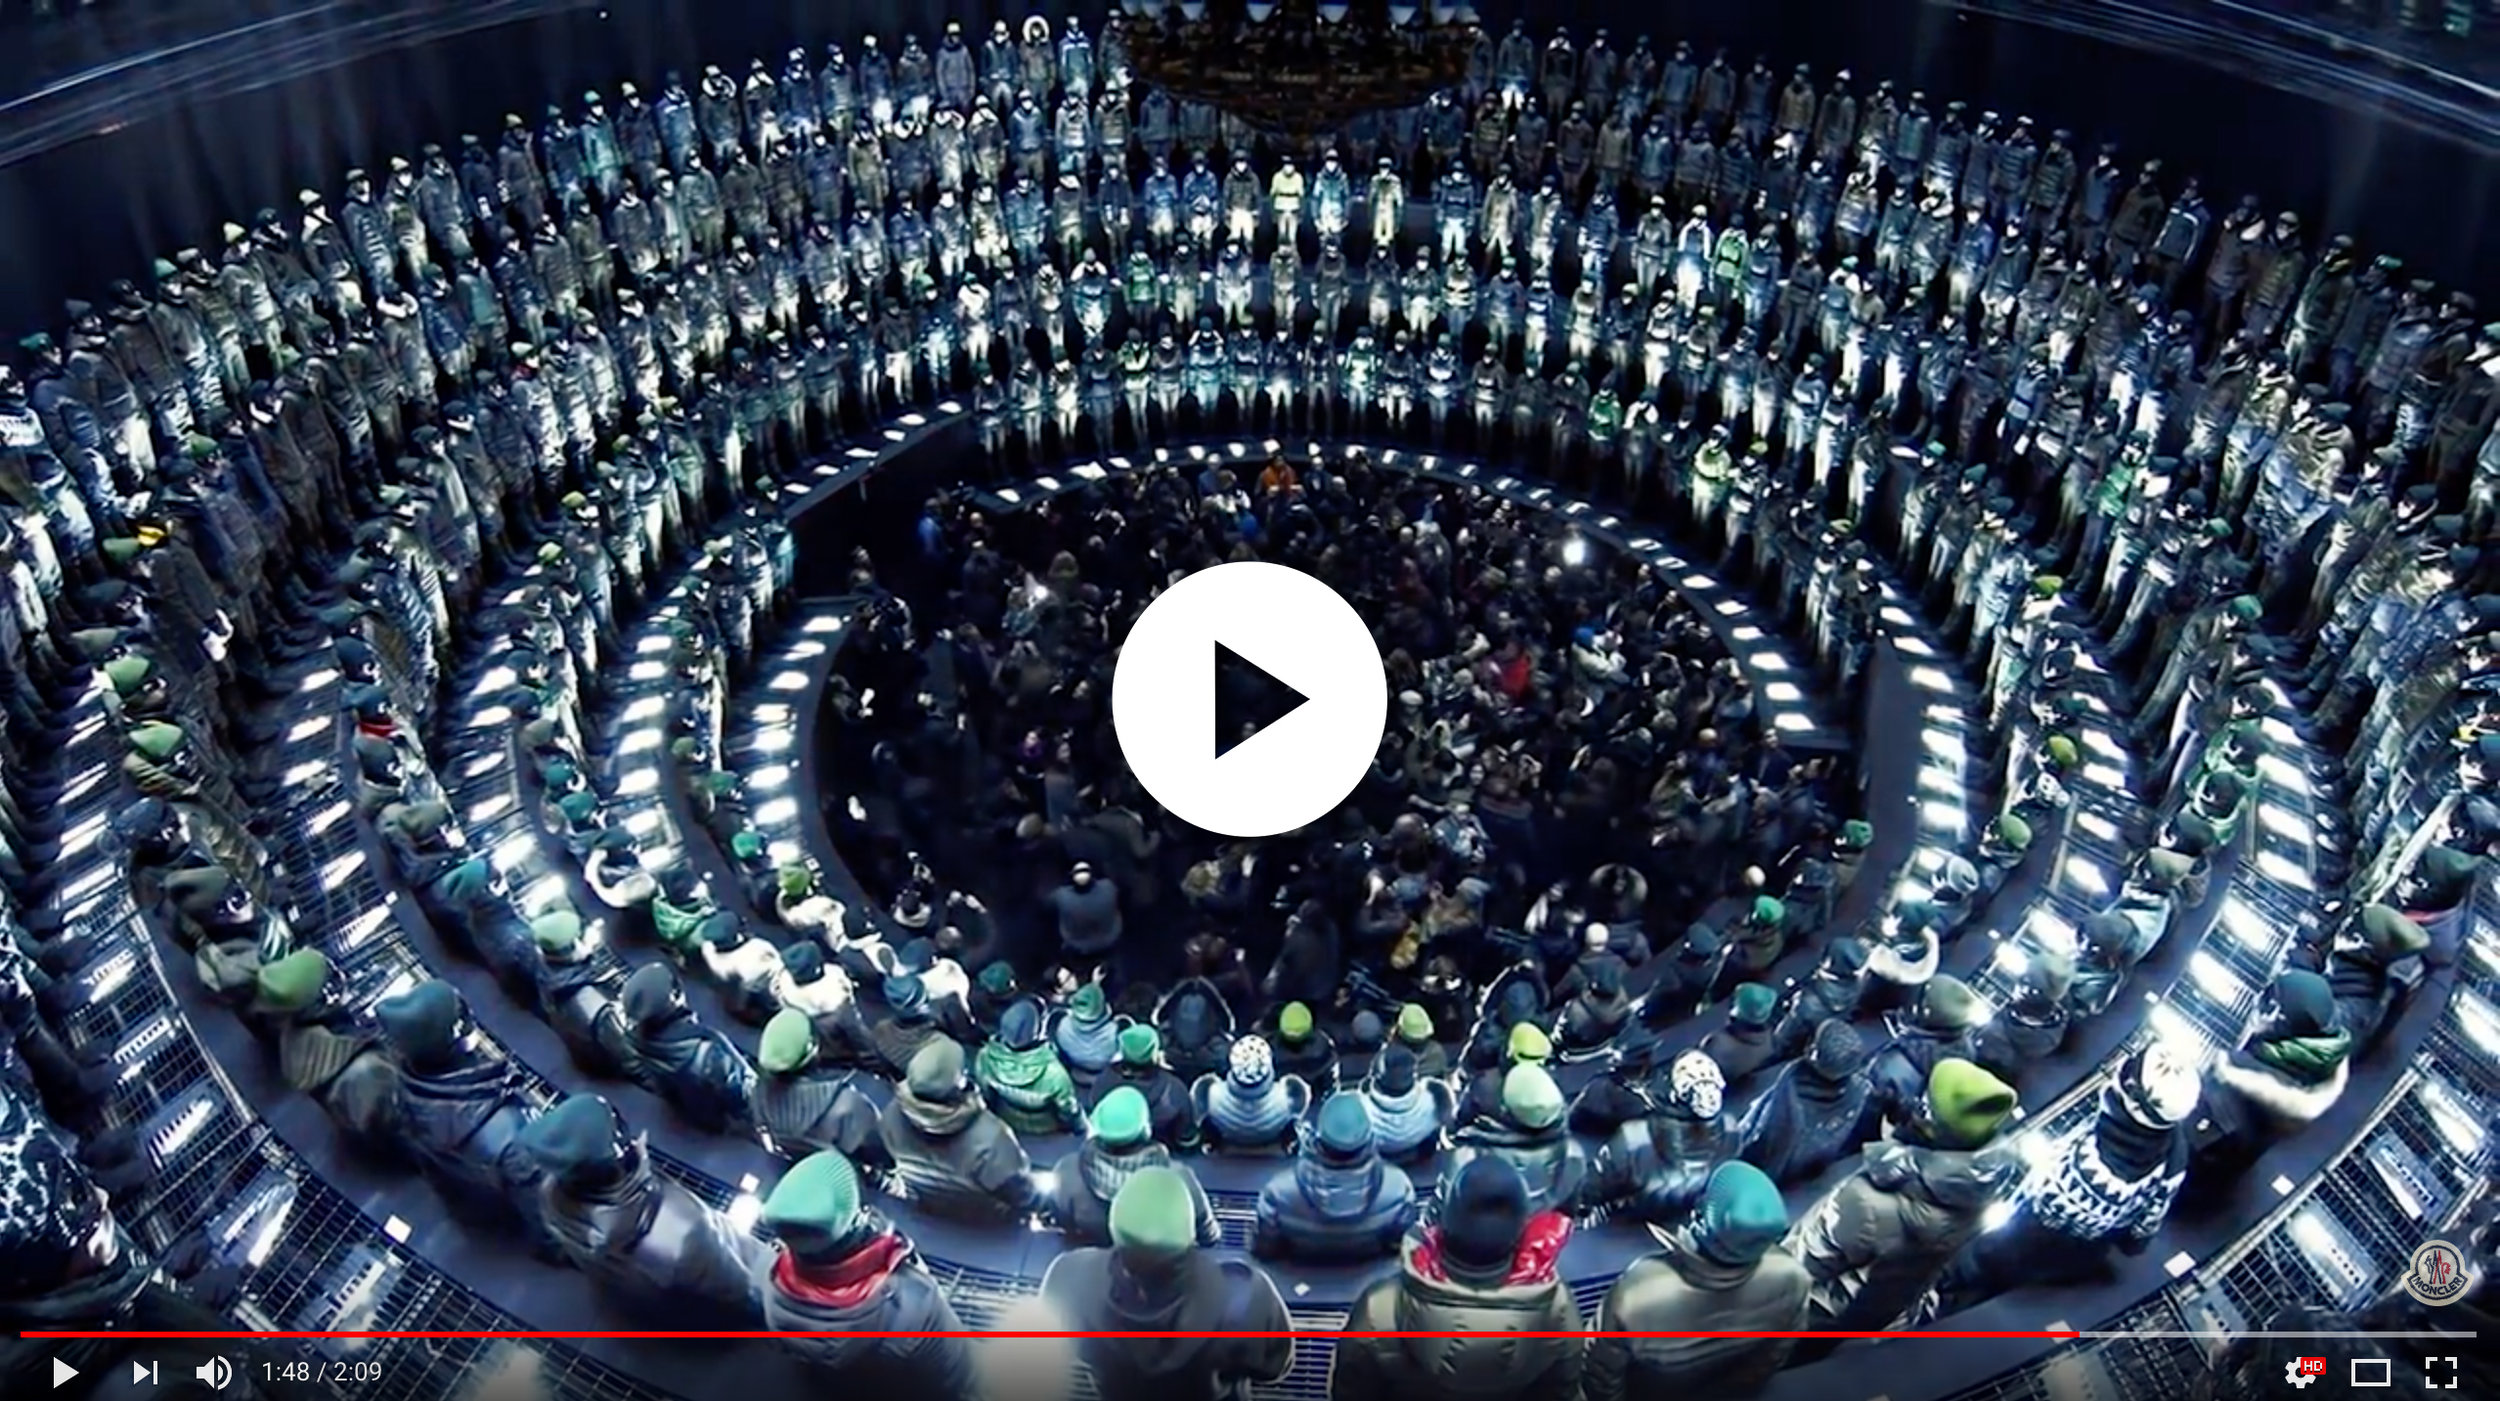 Gotham Hall was the location for the Fall 2013 Moncler Grenoble presentation during New York Fashion Week. The elaborate show featured 370 models arranged in five tiers encircling the room, and featured a giant, kaleidoscopic mirror suspended from the ceiling.